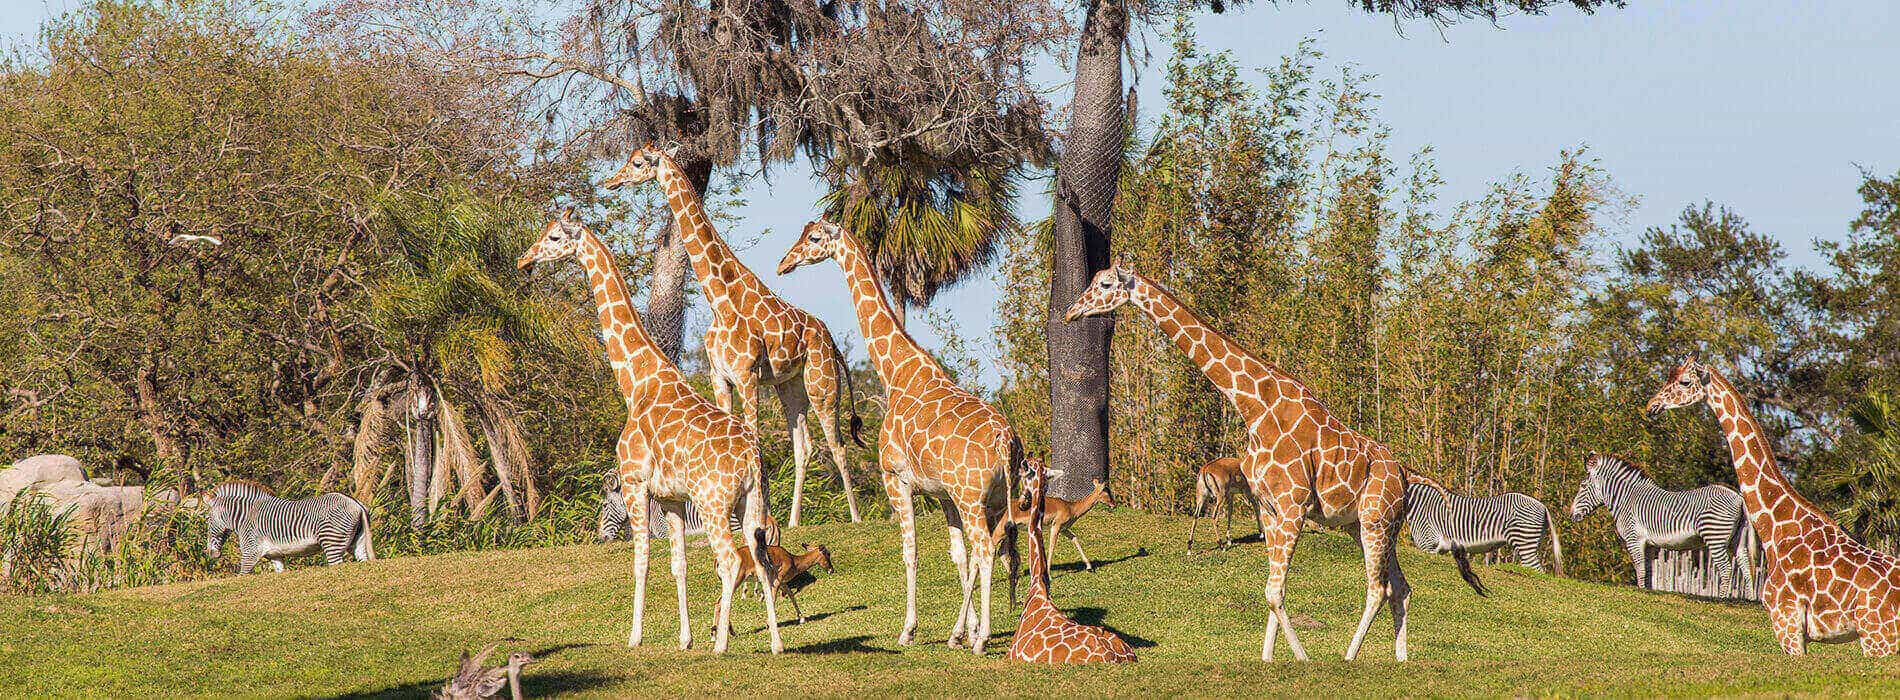 Visit the Serengeti Plains at Busch Gardens Tampa Bay